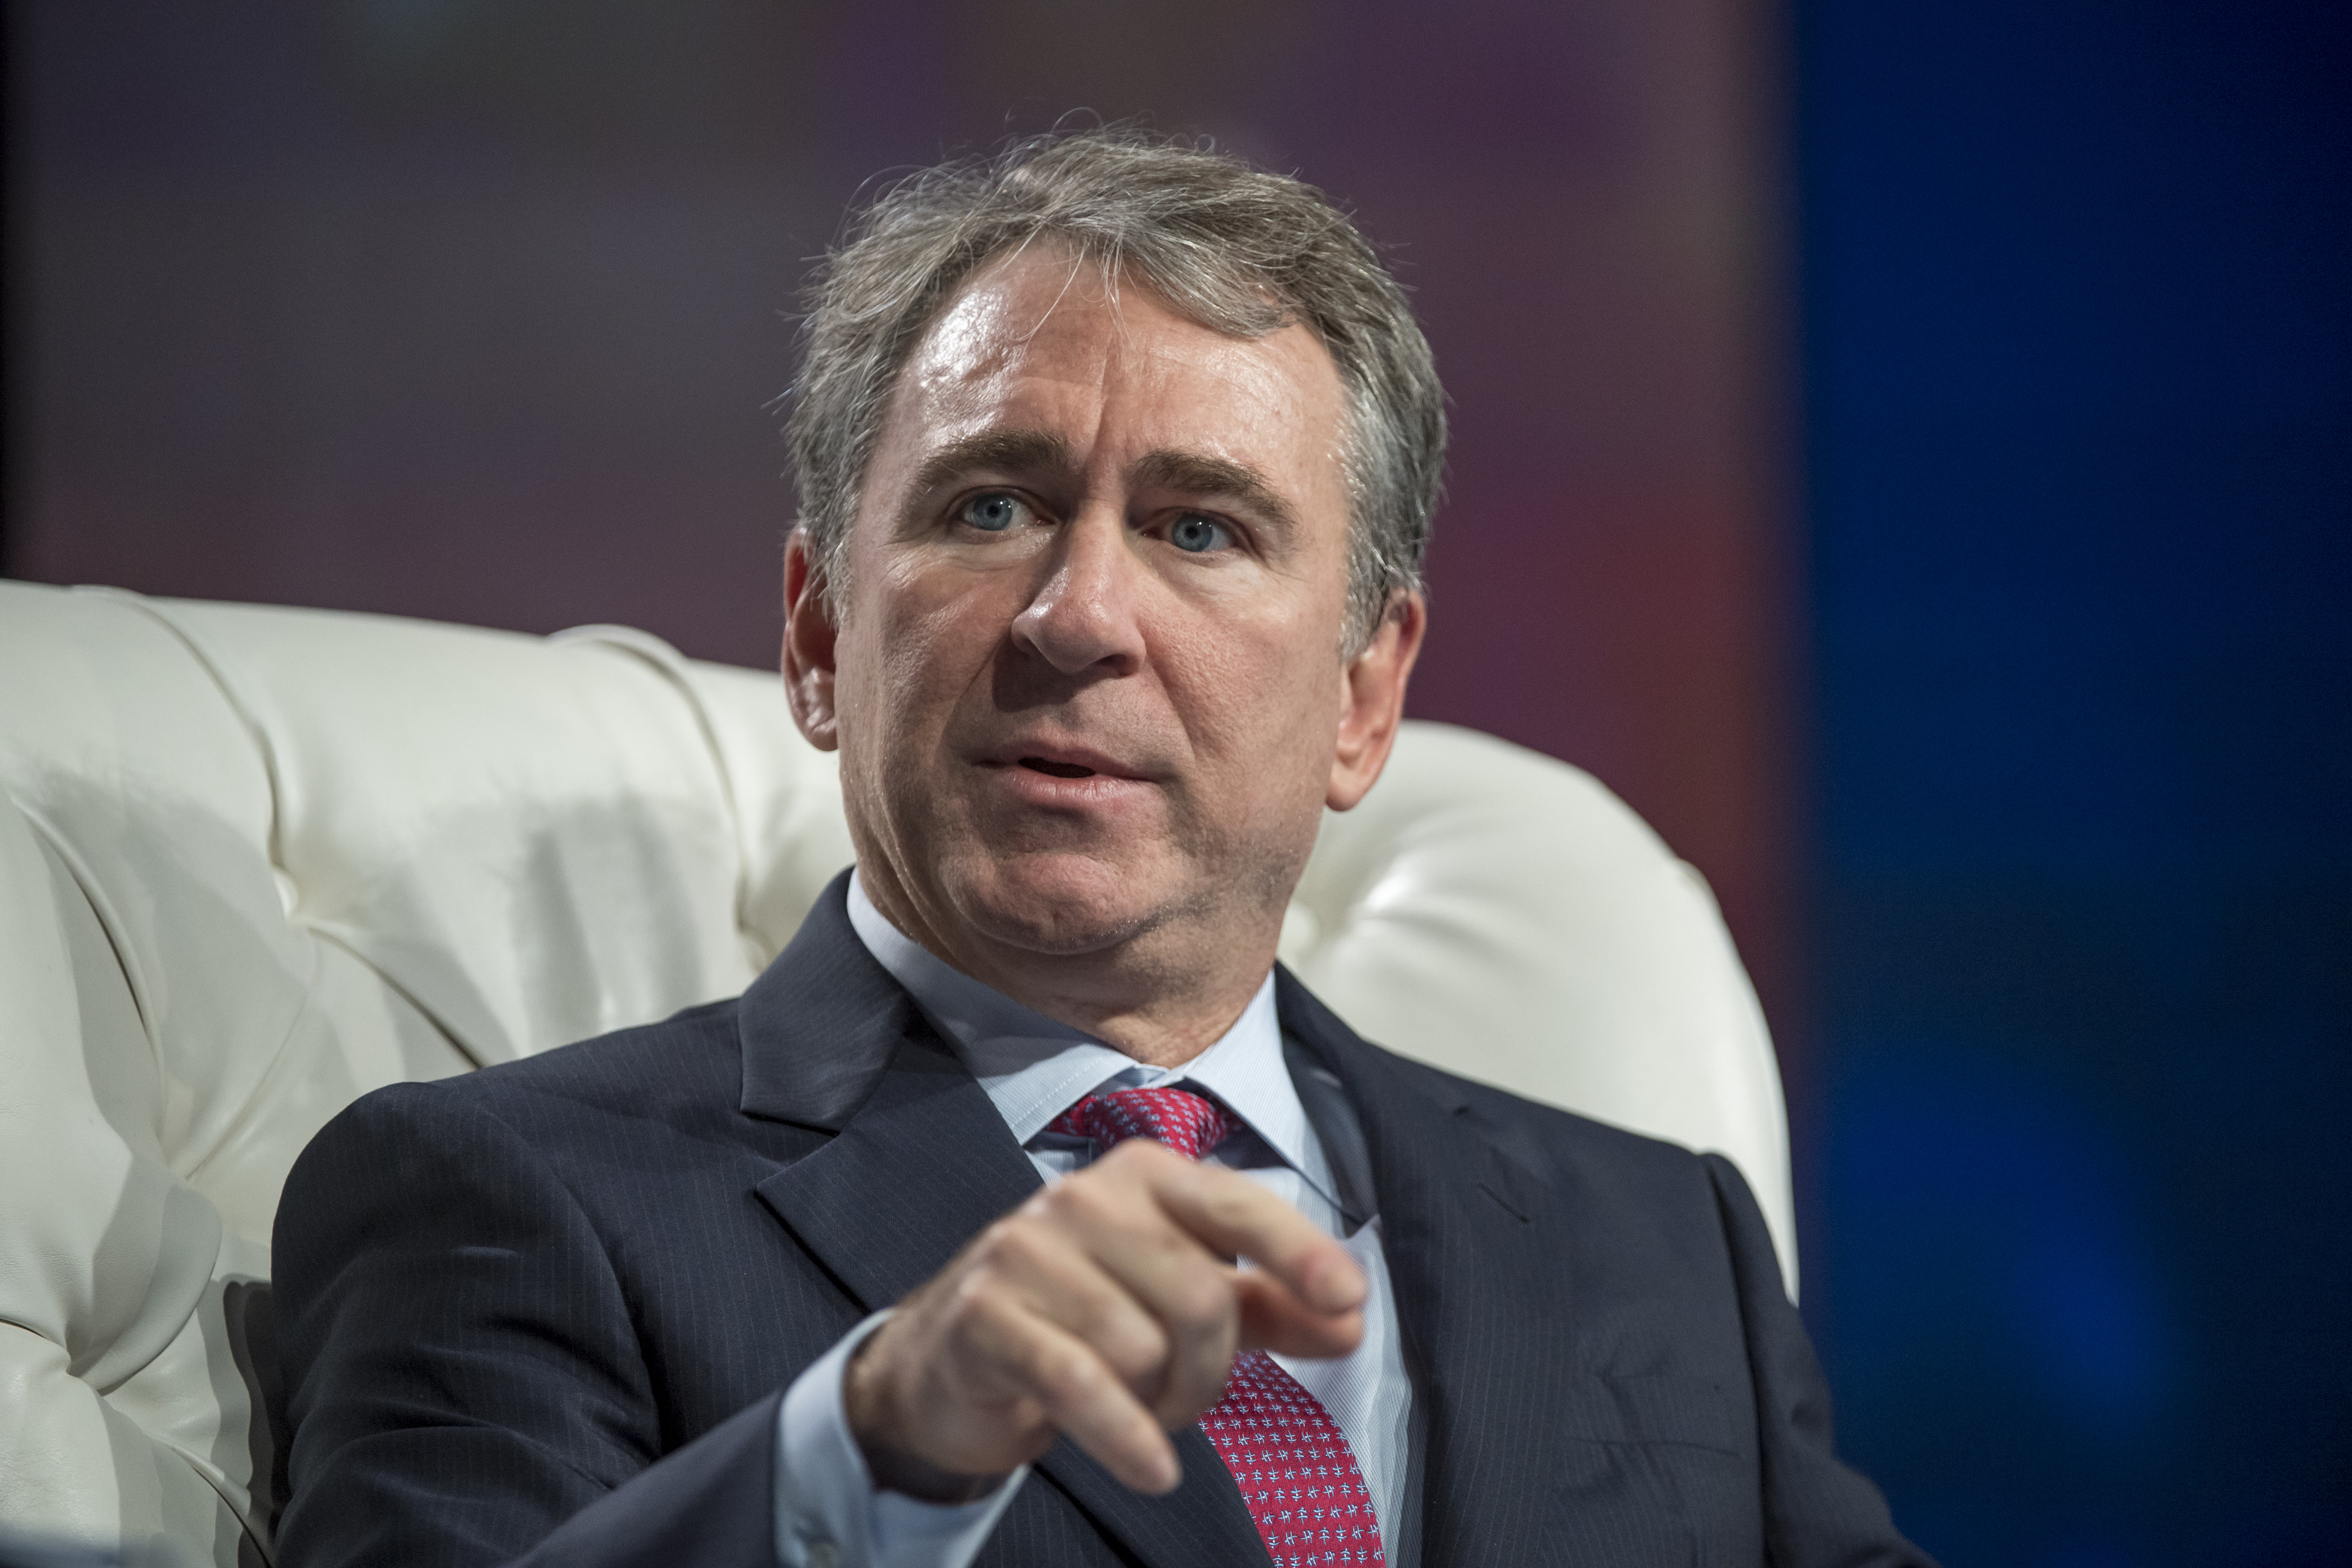 Kenneth Griffin, founder and CEO of Citadel